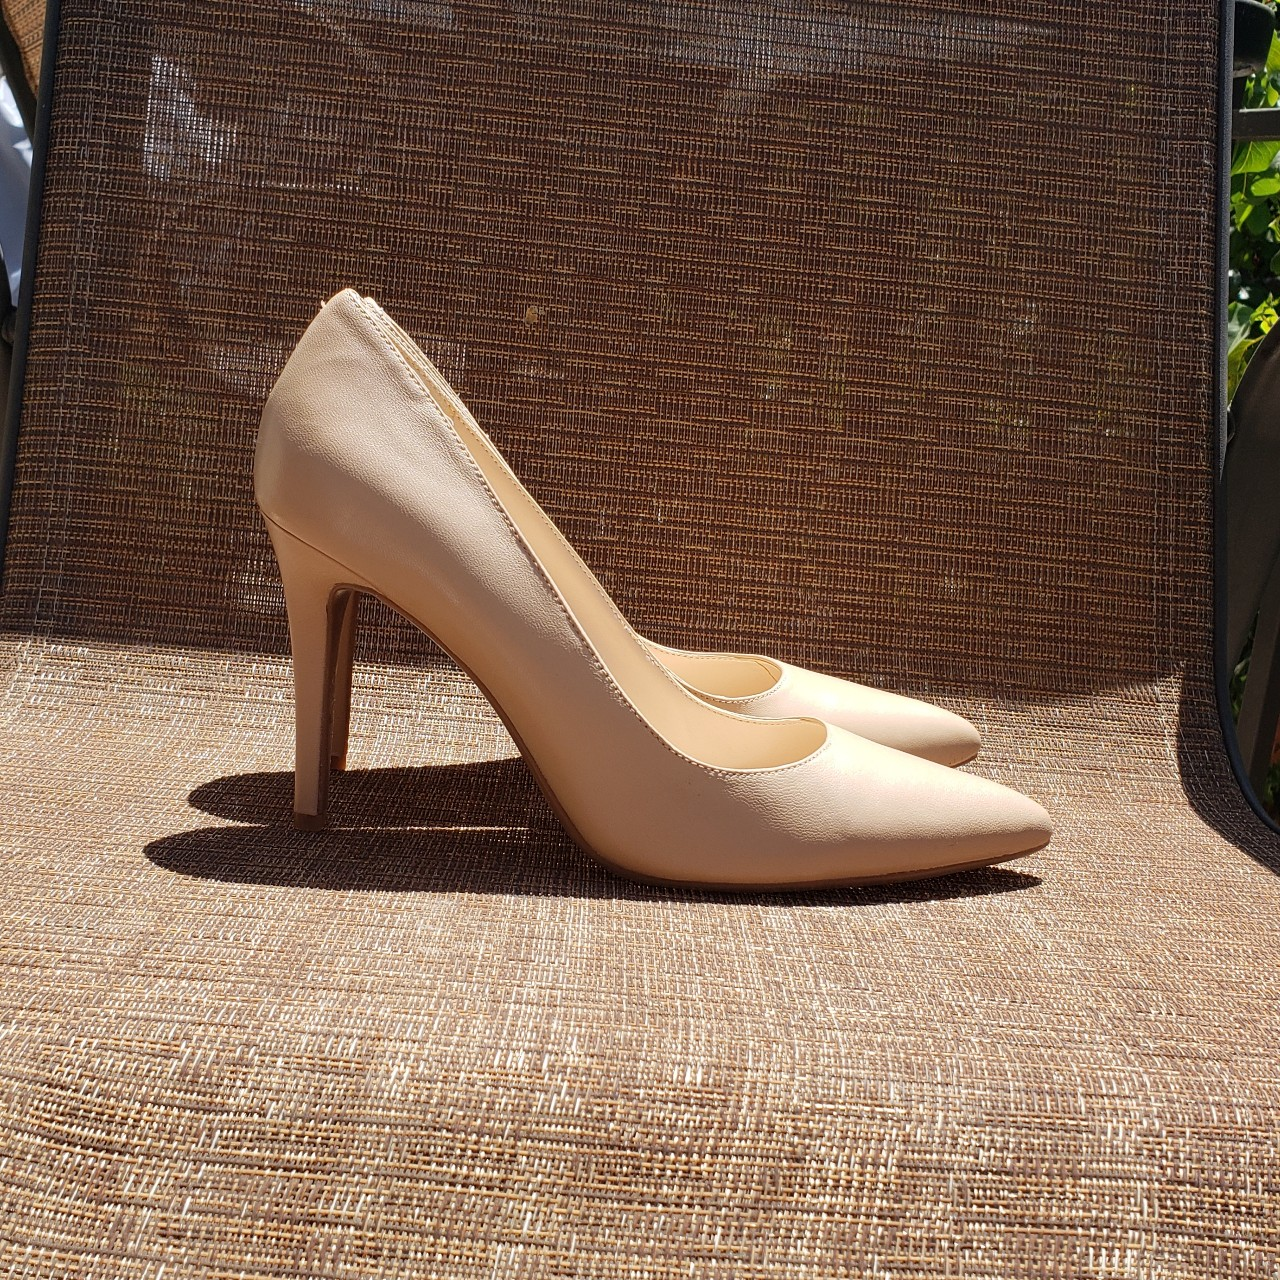 Nine West Flax Pointed Toe Pumps in NudeCream. Size